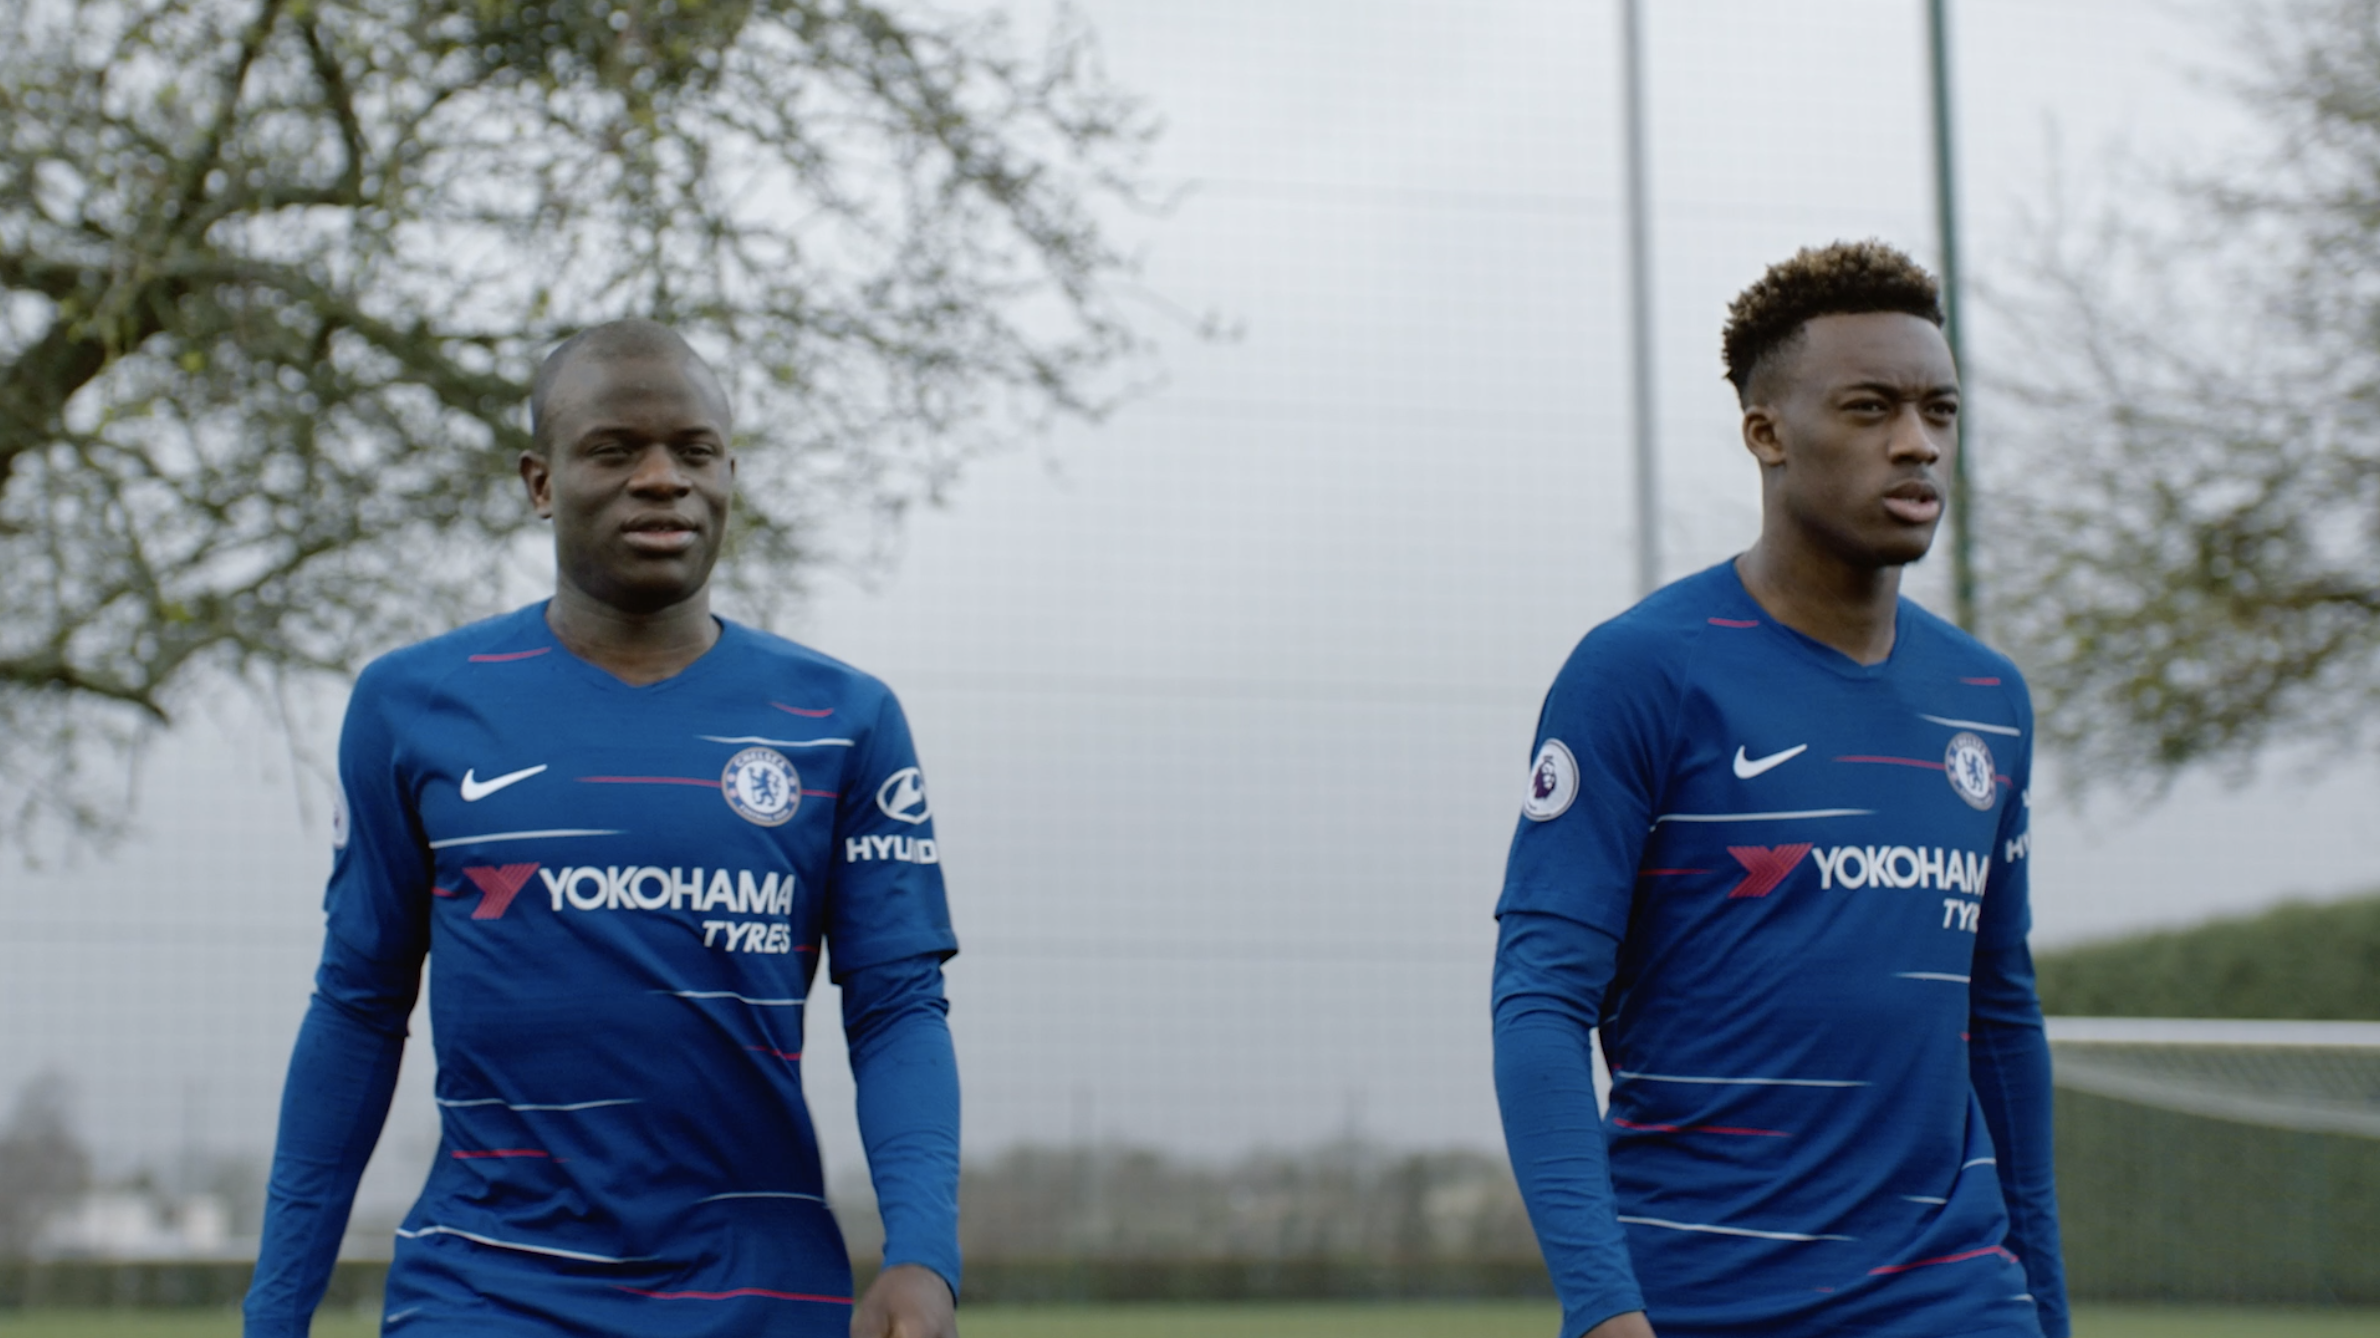 DRIVE FOR MORE:SERIES 8 - Kante & Hudson-Odoi